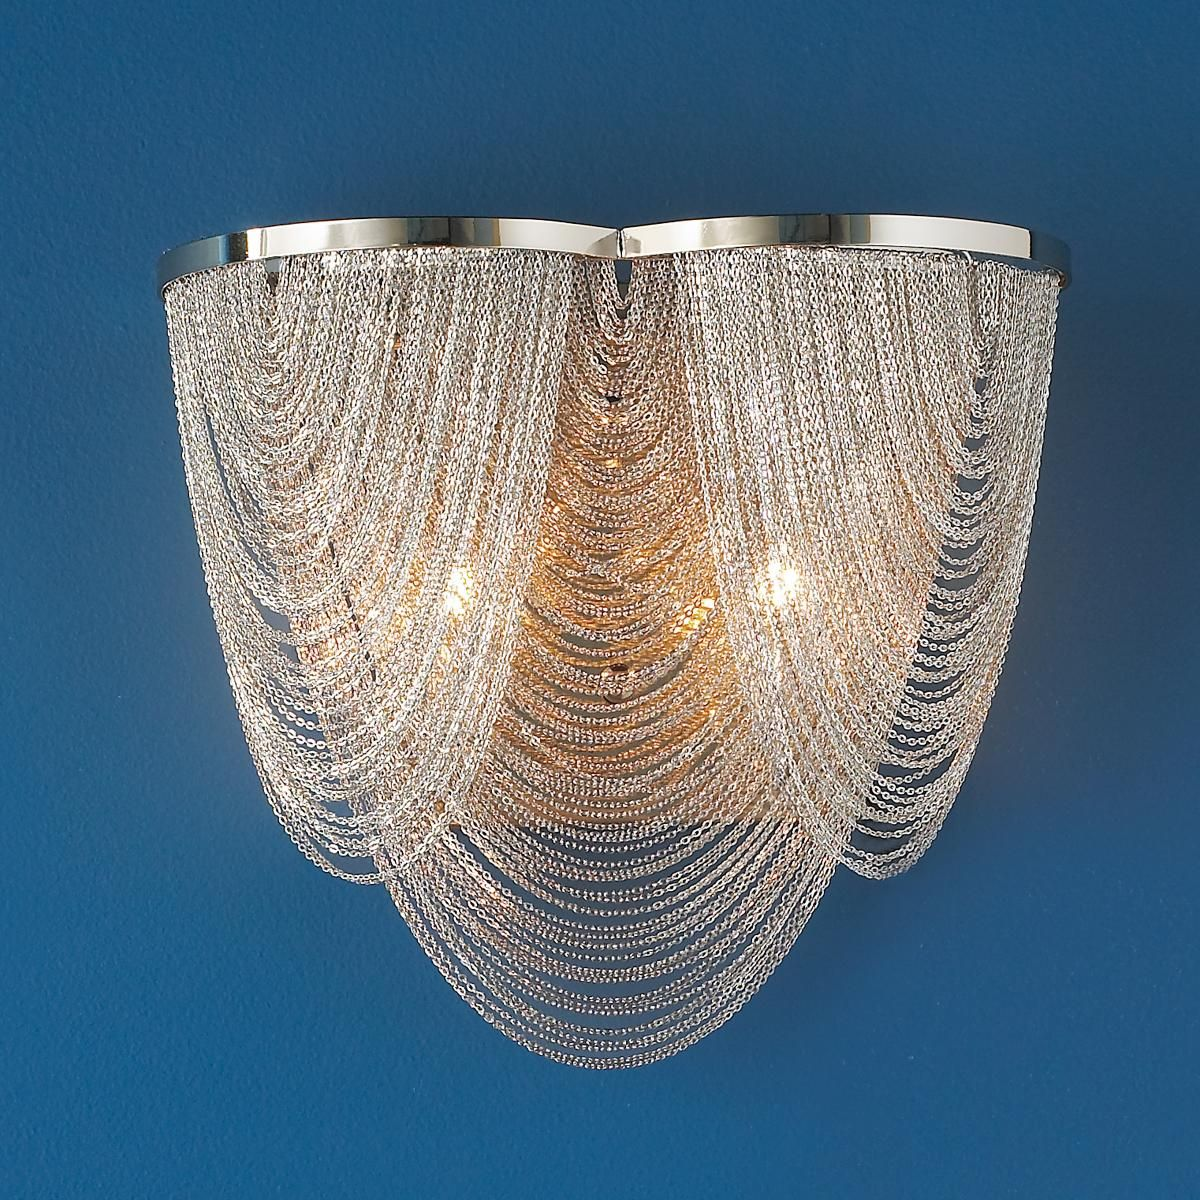 Draped Mesh Sconce Sconce Lamp Shade Sconce Shades Sconces